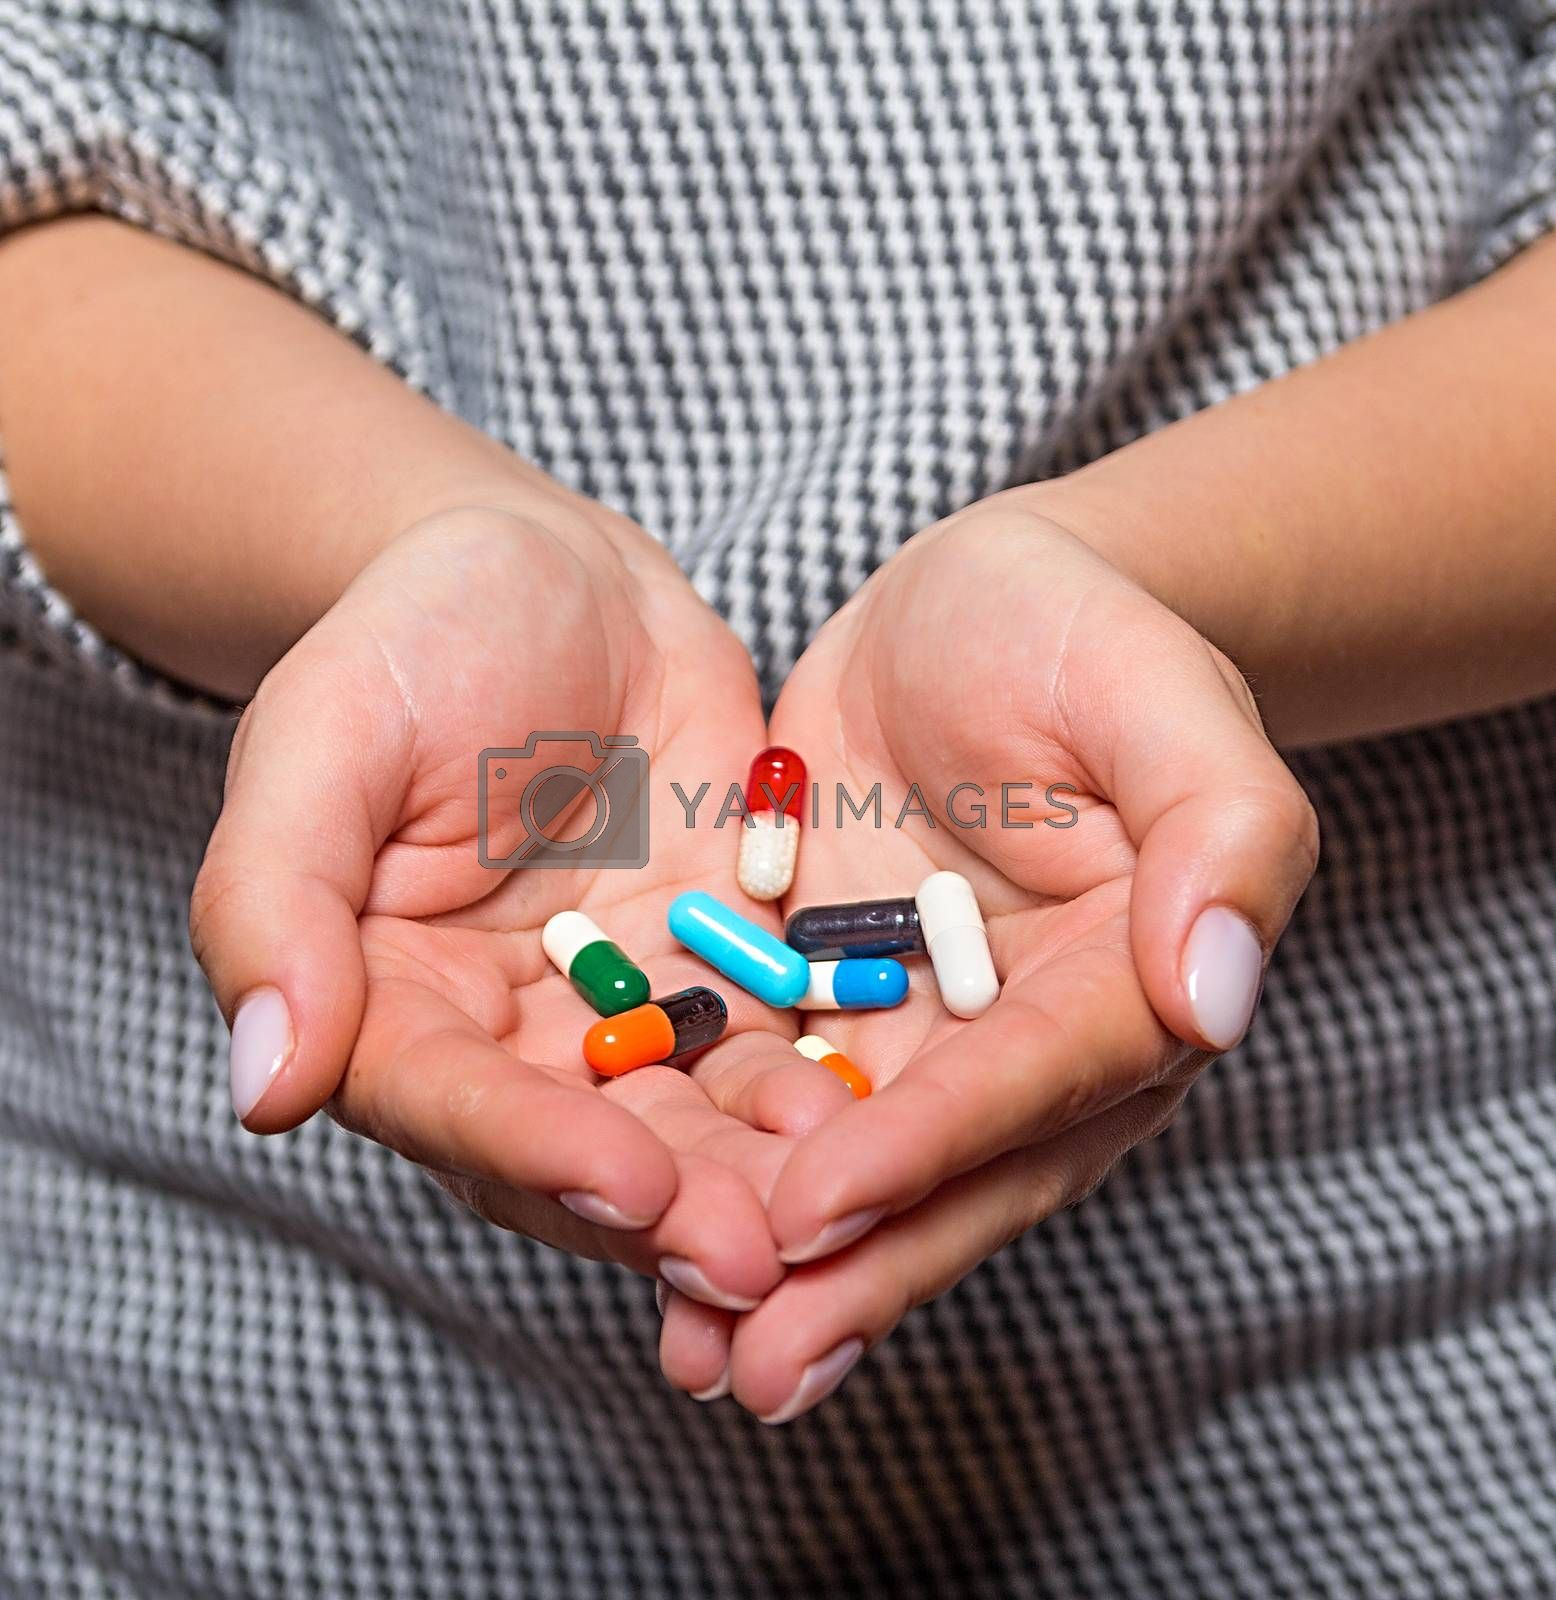 Woman arm holding heap of meds  before taking medication, focus on medicine